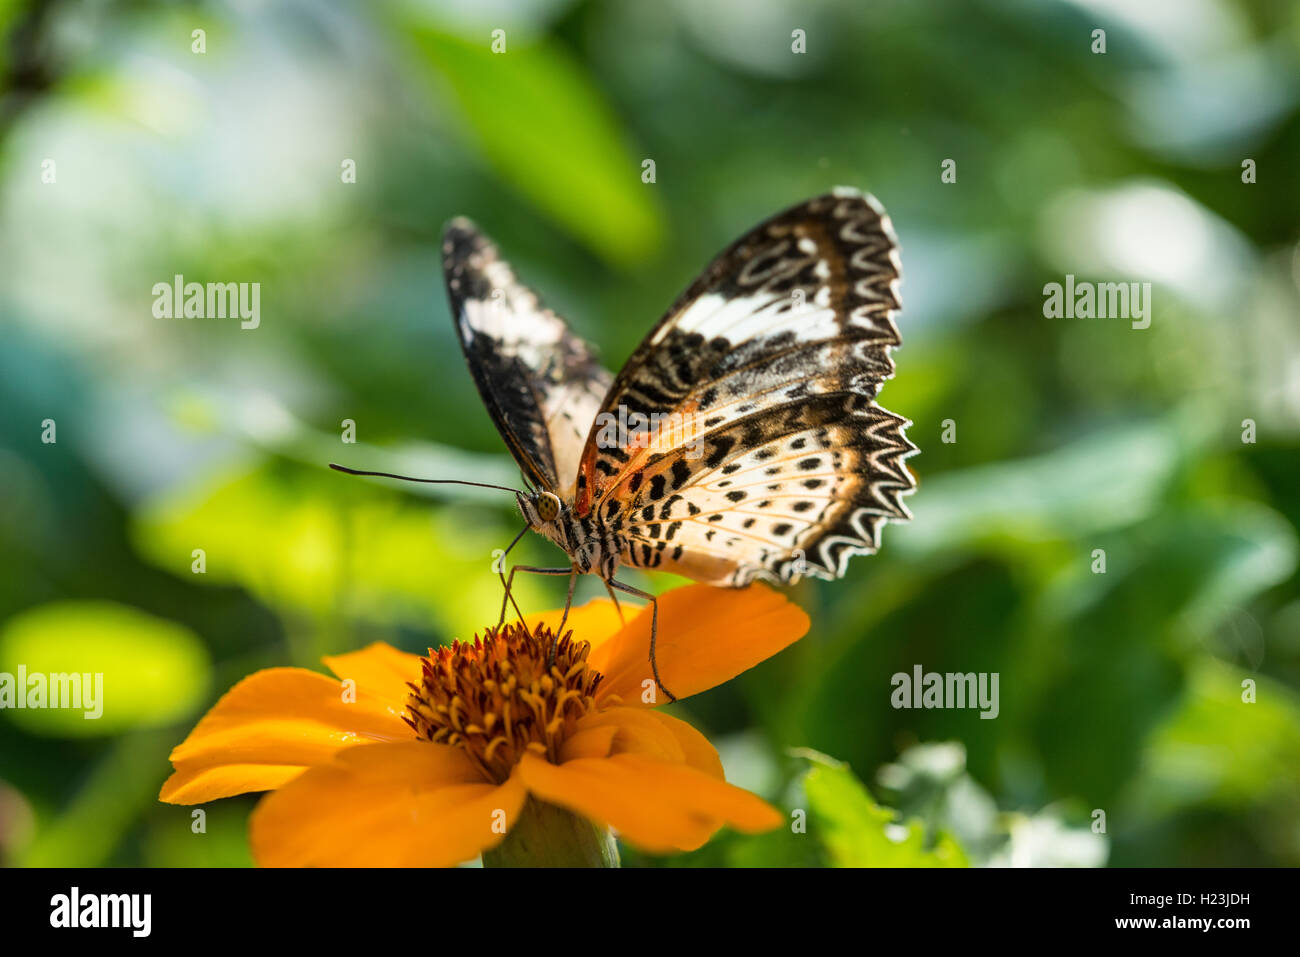 Brown or scarlet peacock (Anartia amathea) on flower, captive - Stock Image